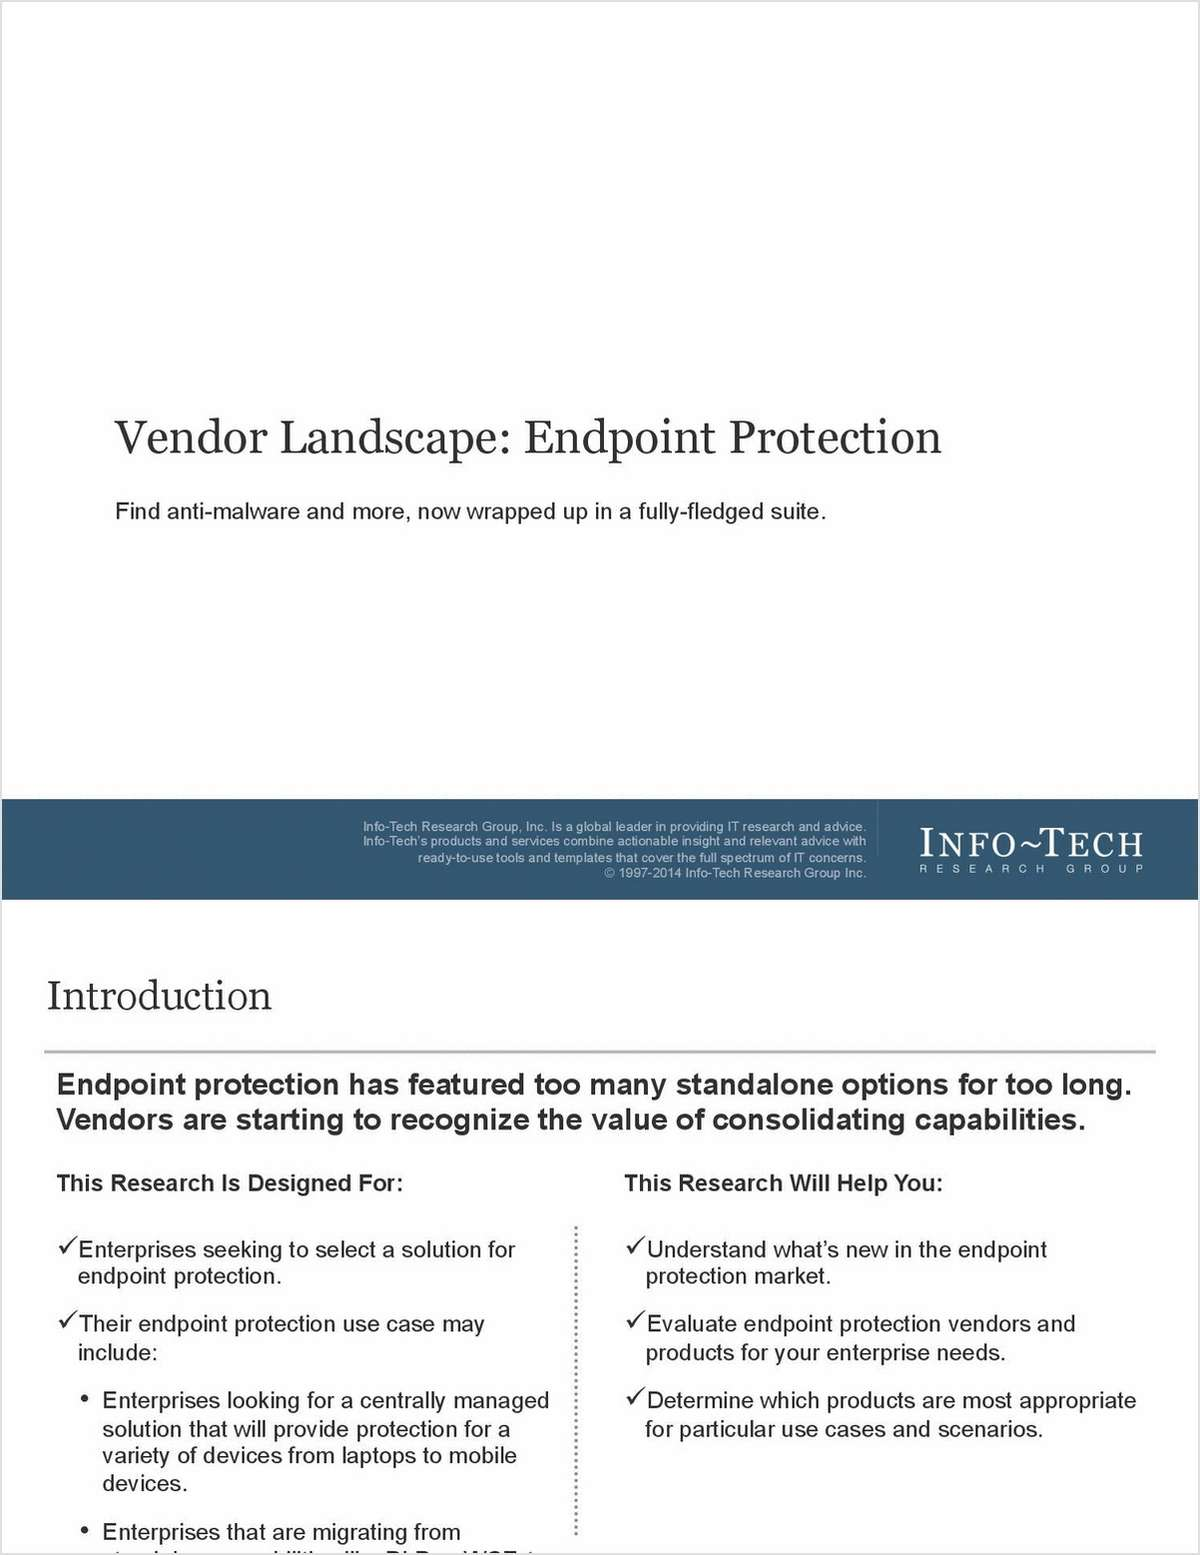 InfoTech Research: The Vendor Landscape for Endpoint Protection